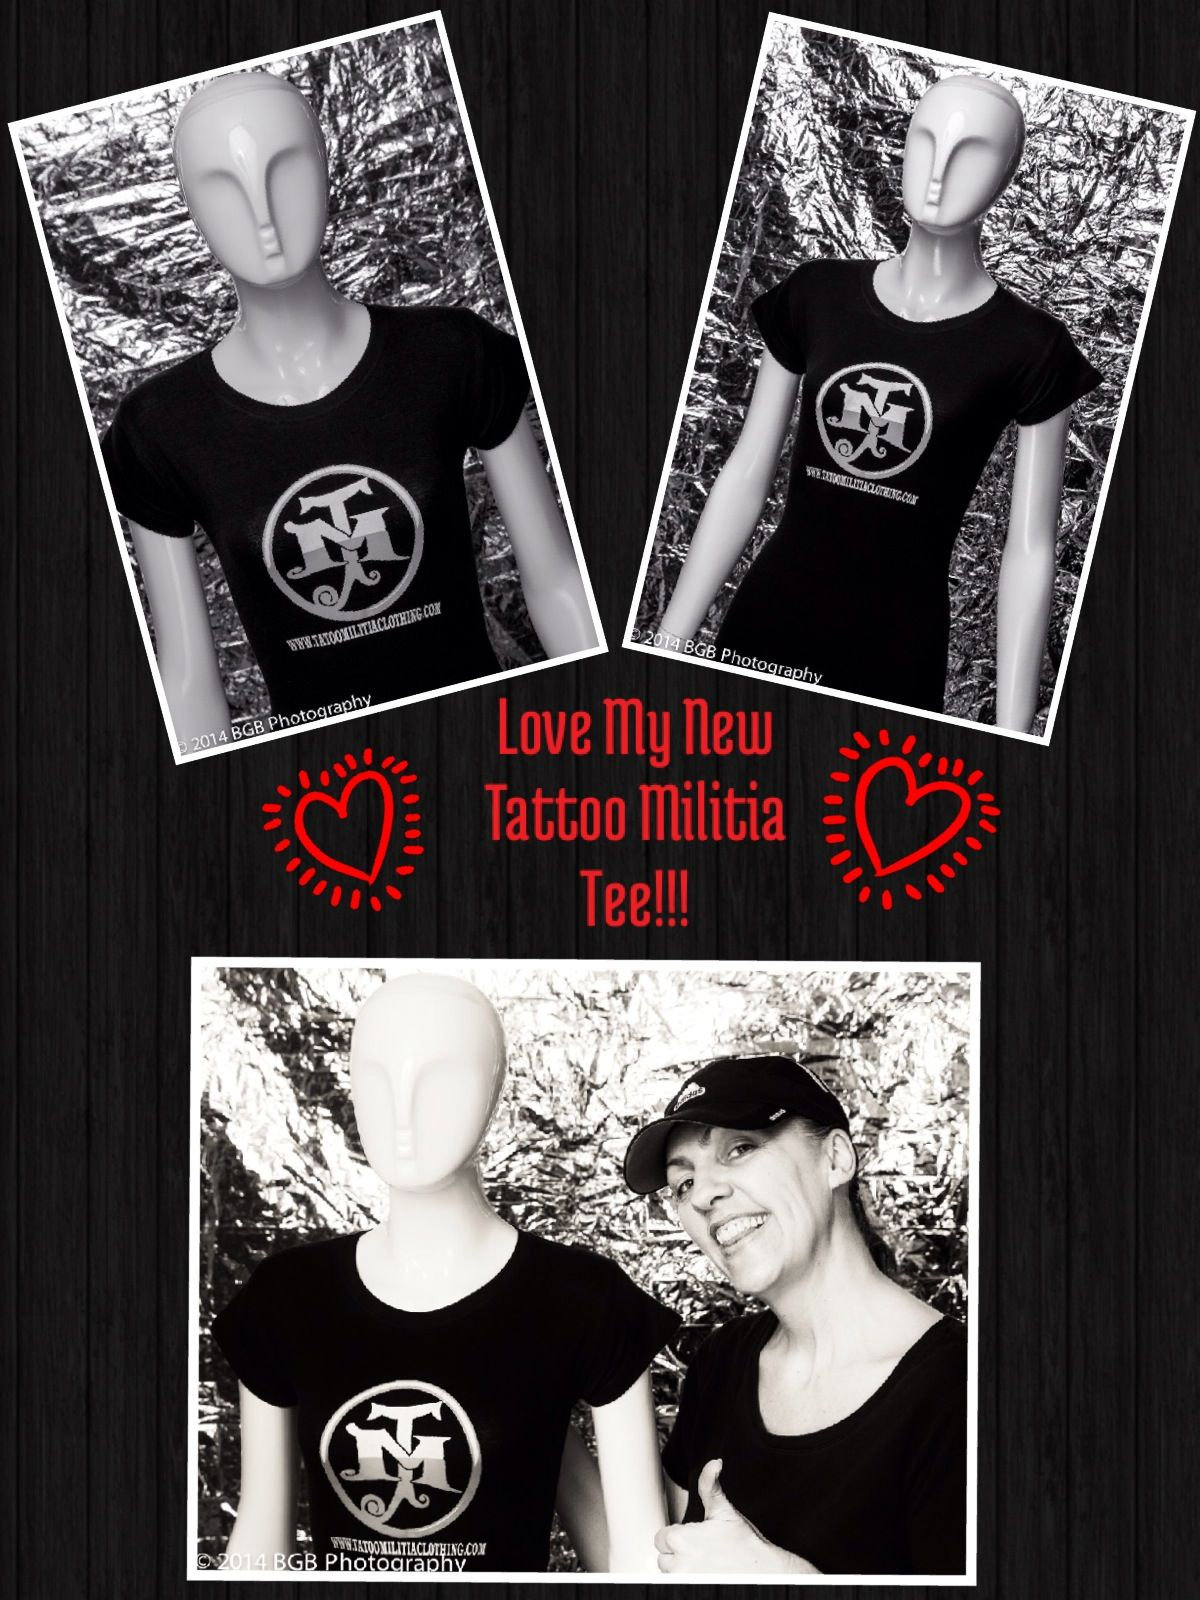 "Check Out my #Cool #New #Tee from TattooTony Rodriguez's #ClothingLine, Tattoo militia clothing!:)   ES Audio Recording Studio's In-House #Photographer, Brendan (of BGBPhoto:) and I had a 'lil #Fun yesterday Shooting some pics after I received my Tees!:) haha:) We even pulled out ""Mary"" our #Famous #Mannequin:) haha:)   (* If #TattooTony looks Familiar, you may Recognize him from his Appearances on a few of Rocker and #RealityStar Bret Michaels's #TV Shows:)   Pic Collage: #JamminJo 2014"